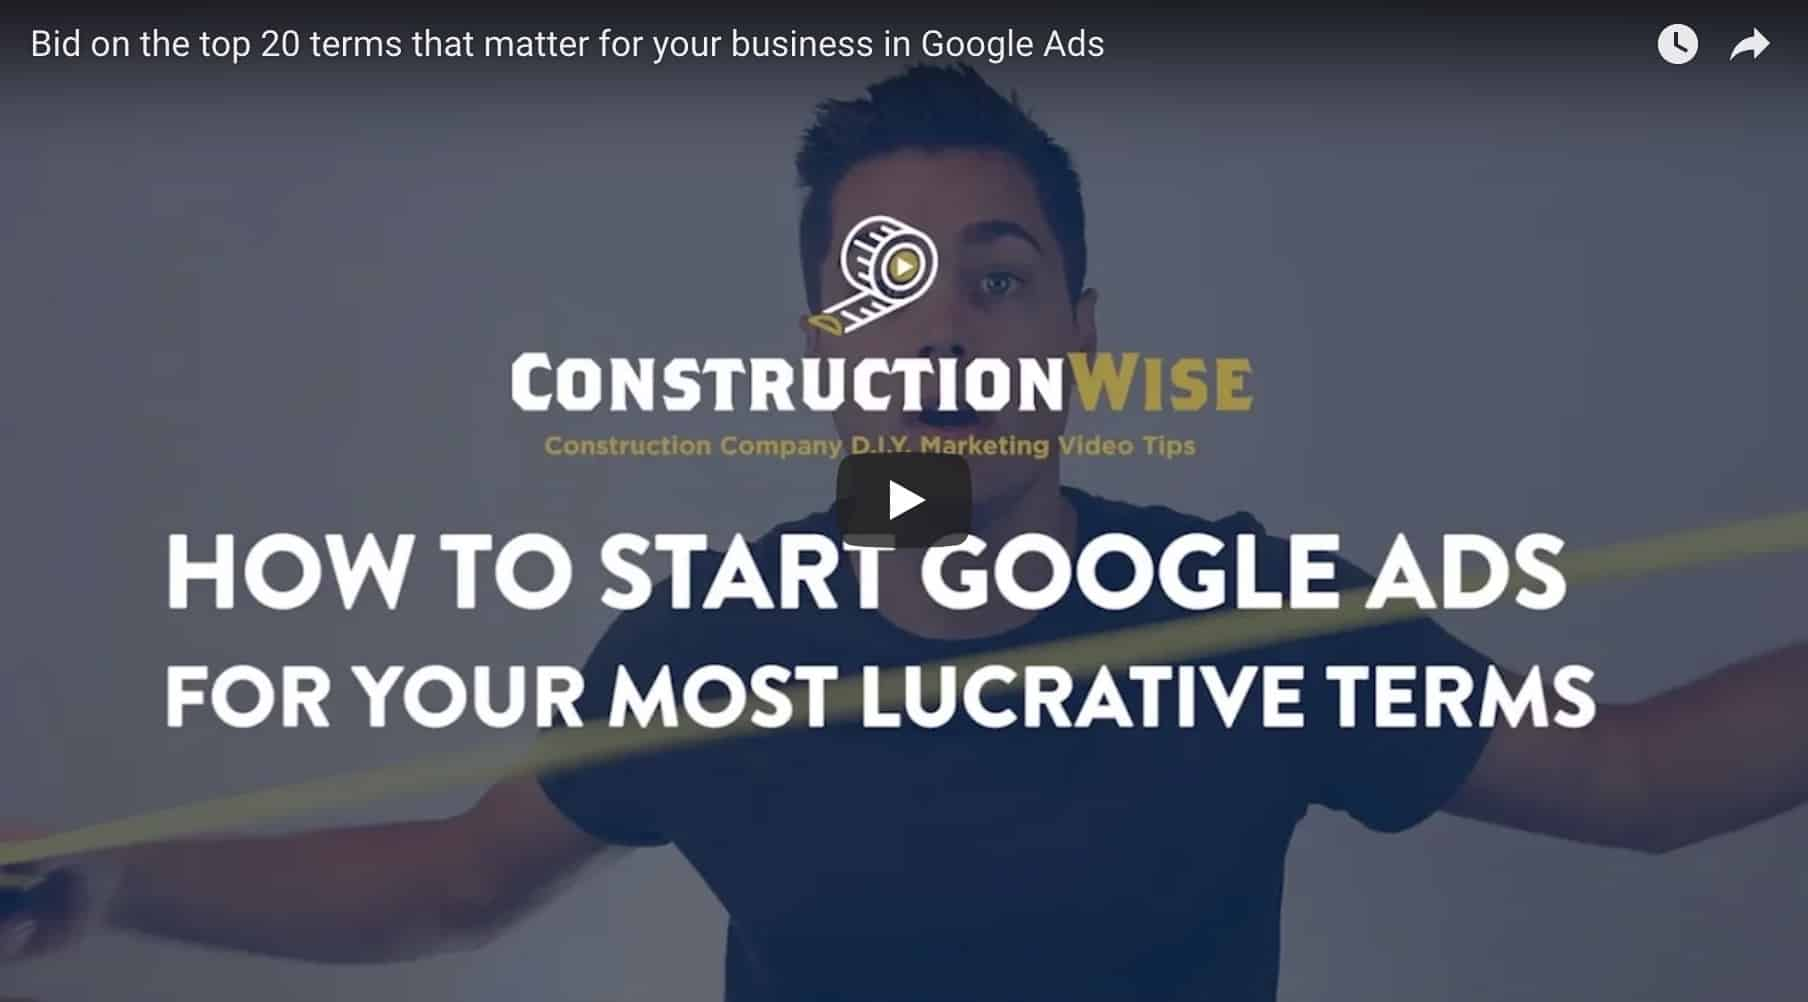 Get Started on Google Ads - with your 20 most lucrative search terms